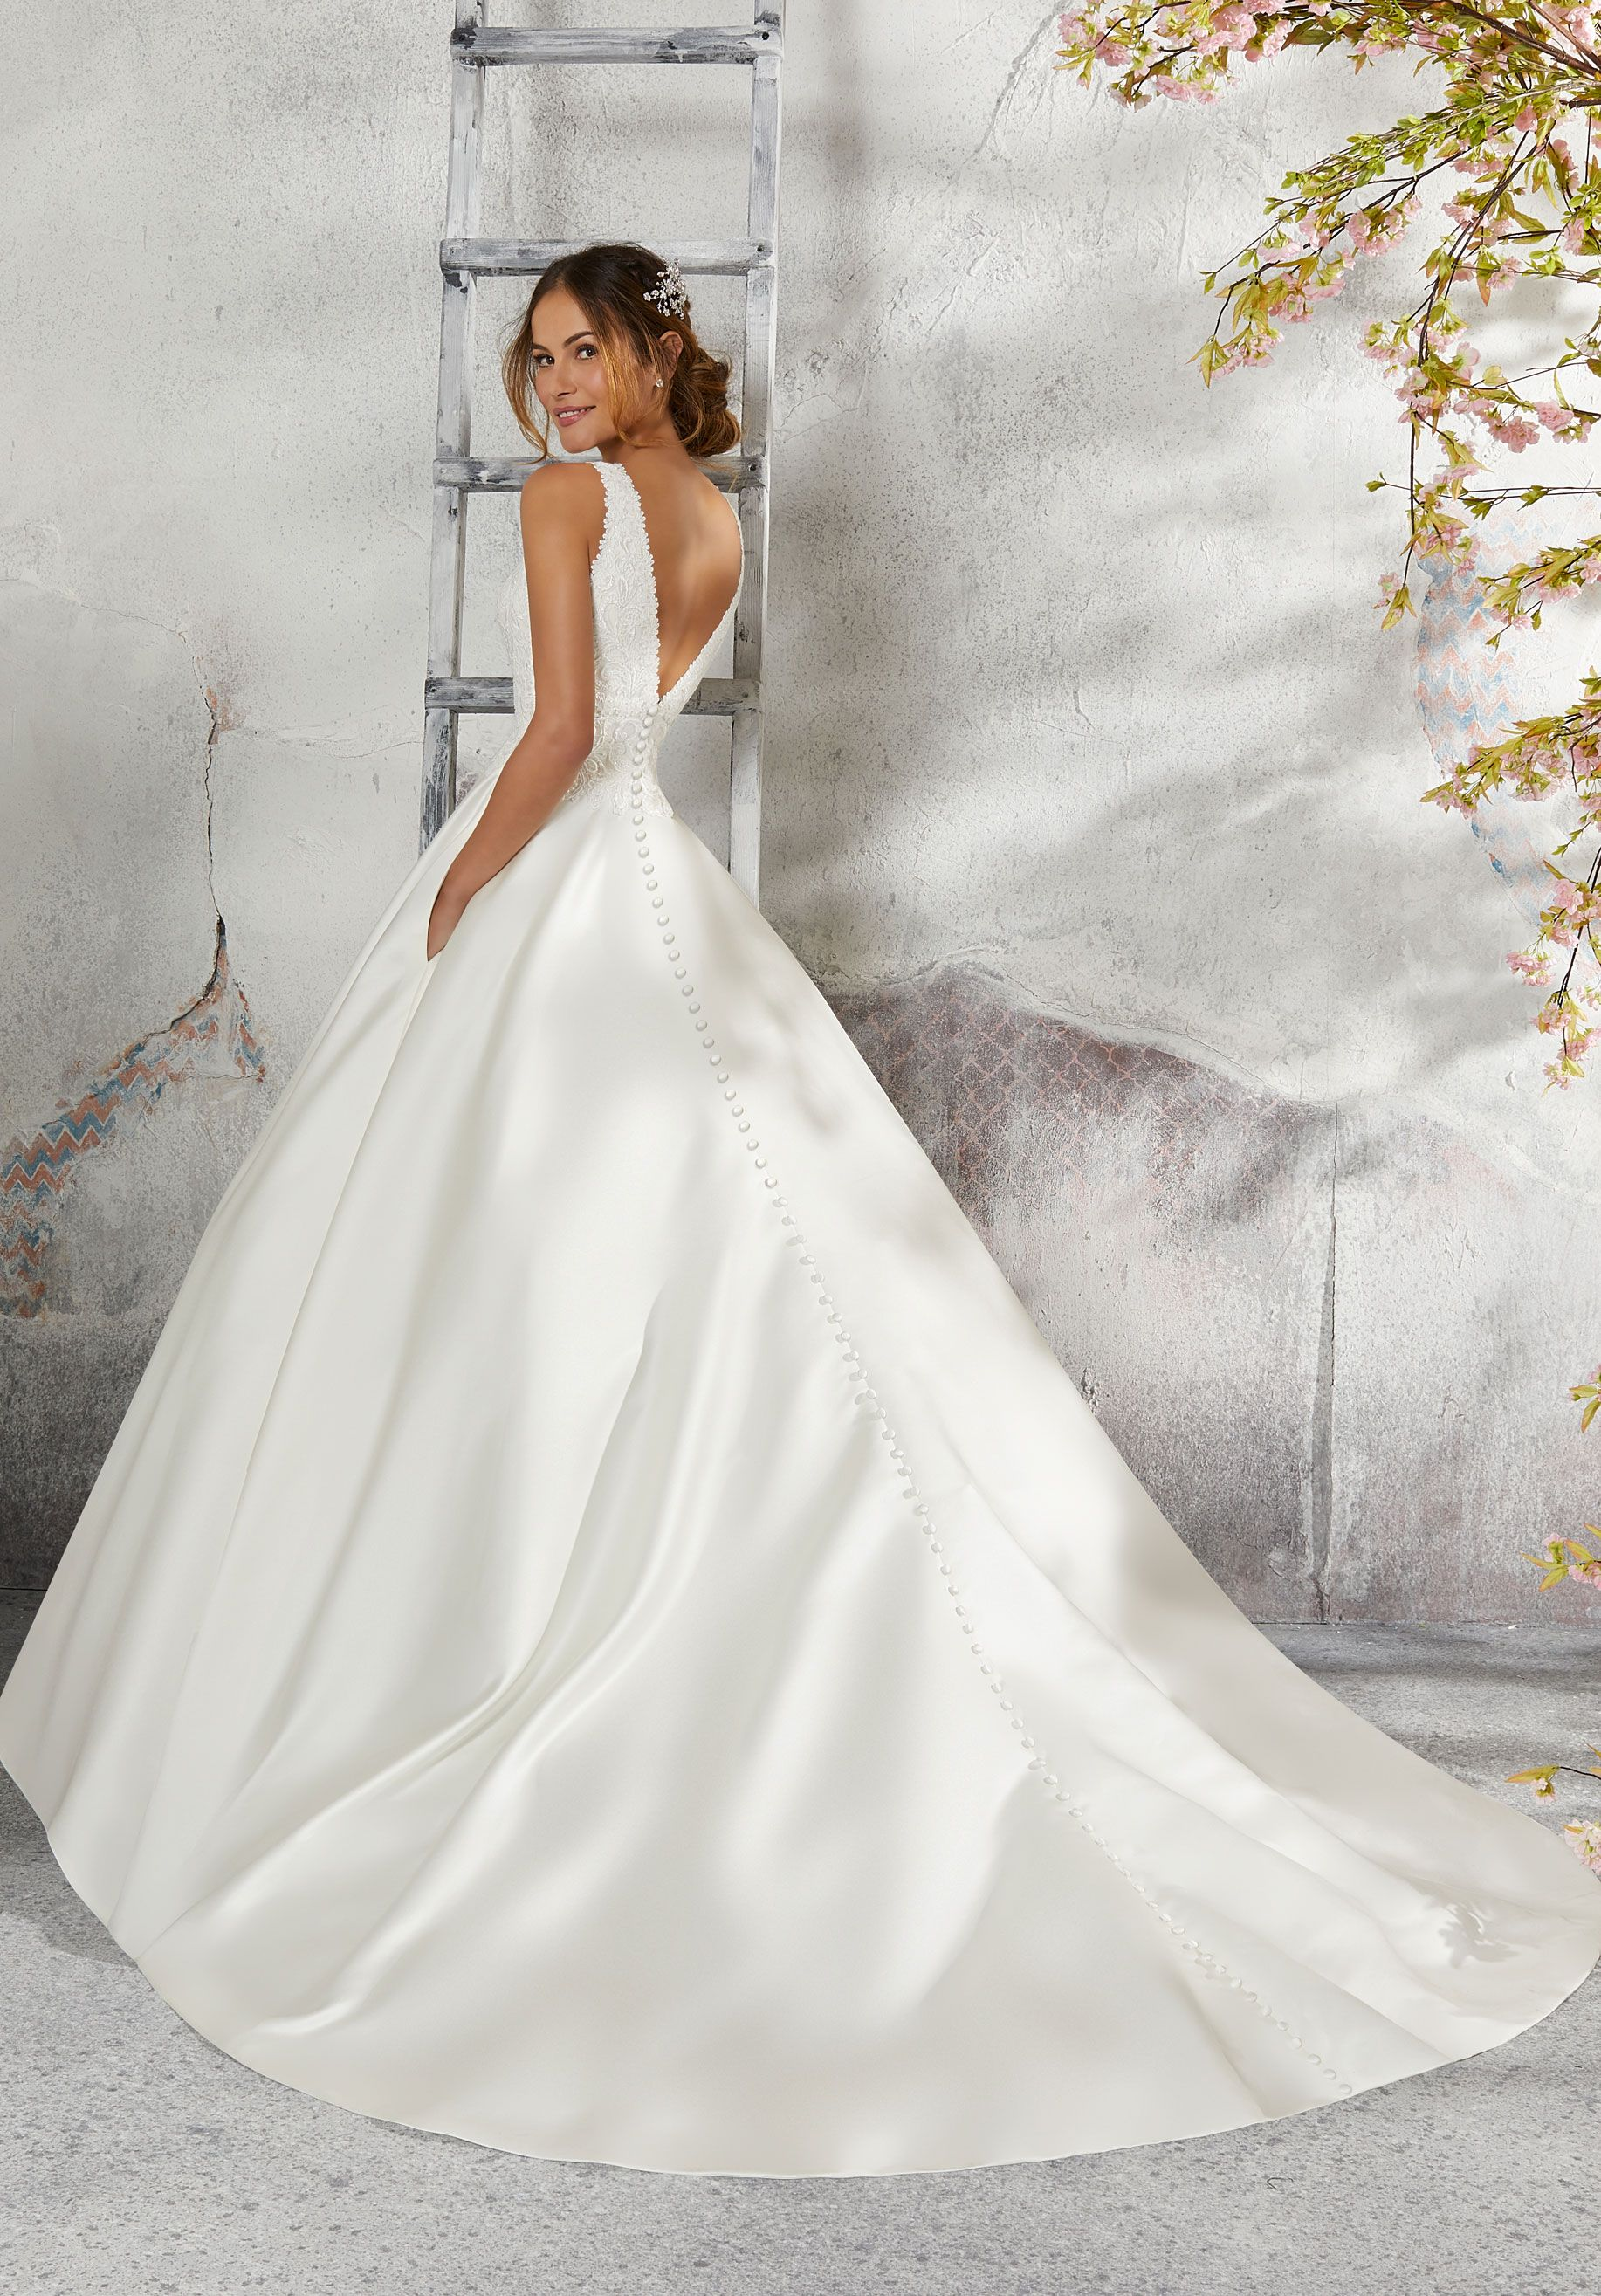 Laurie Wedding Dress Morilee Classy Wedding Dress Ball Gowns Wedding Classic Wedding Dress